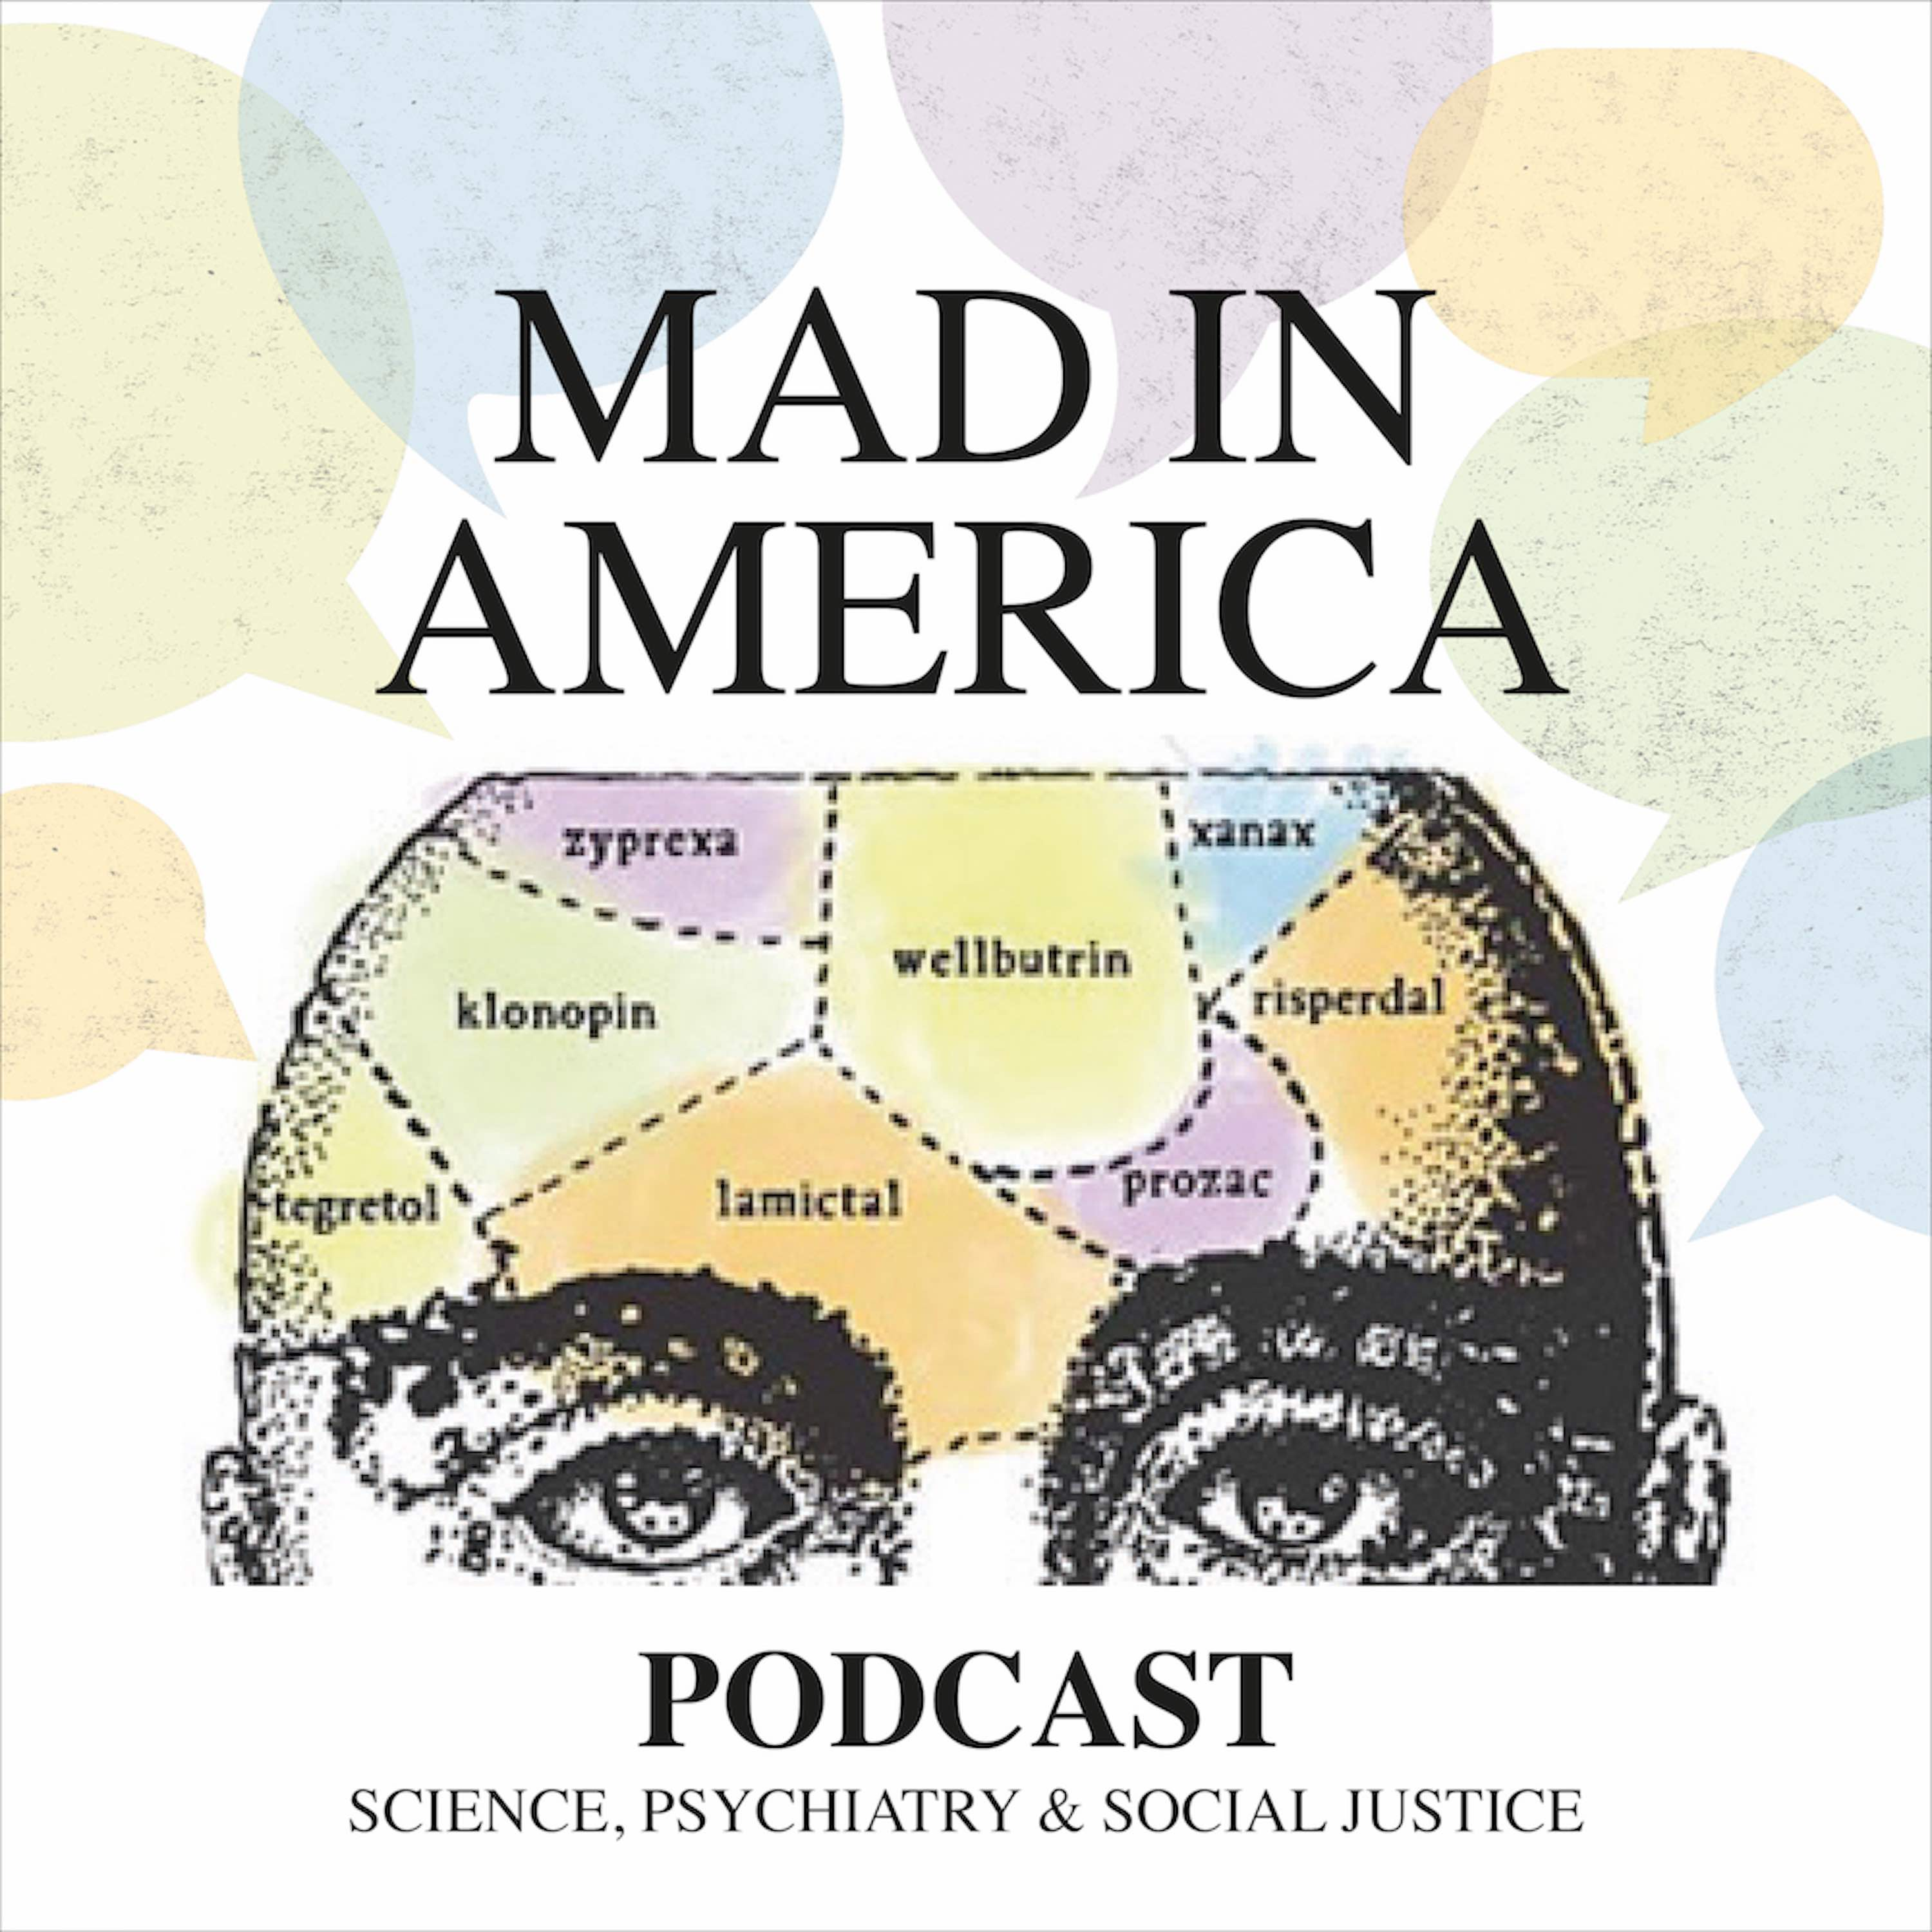 Mad in America: Rethinking Mental Health - Peter Breggin - The Conscience of Psychiatry (Part 2)